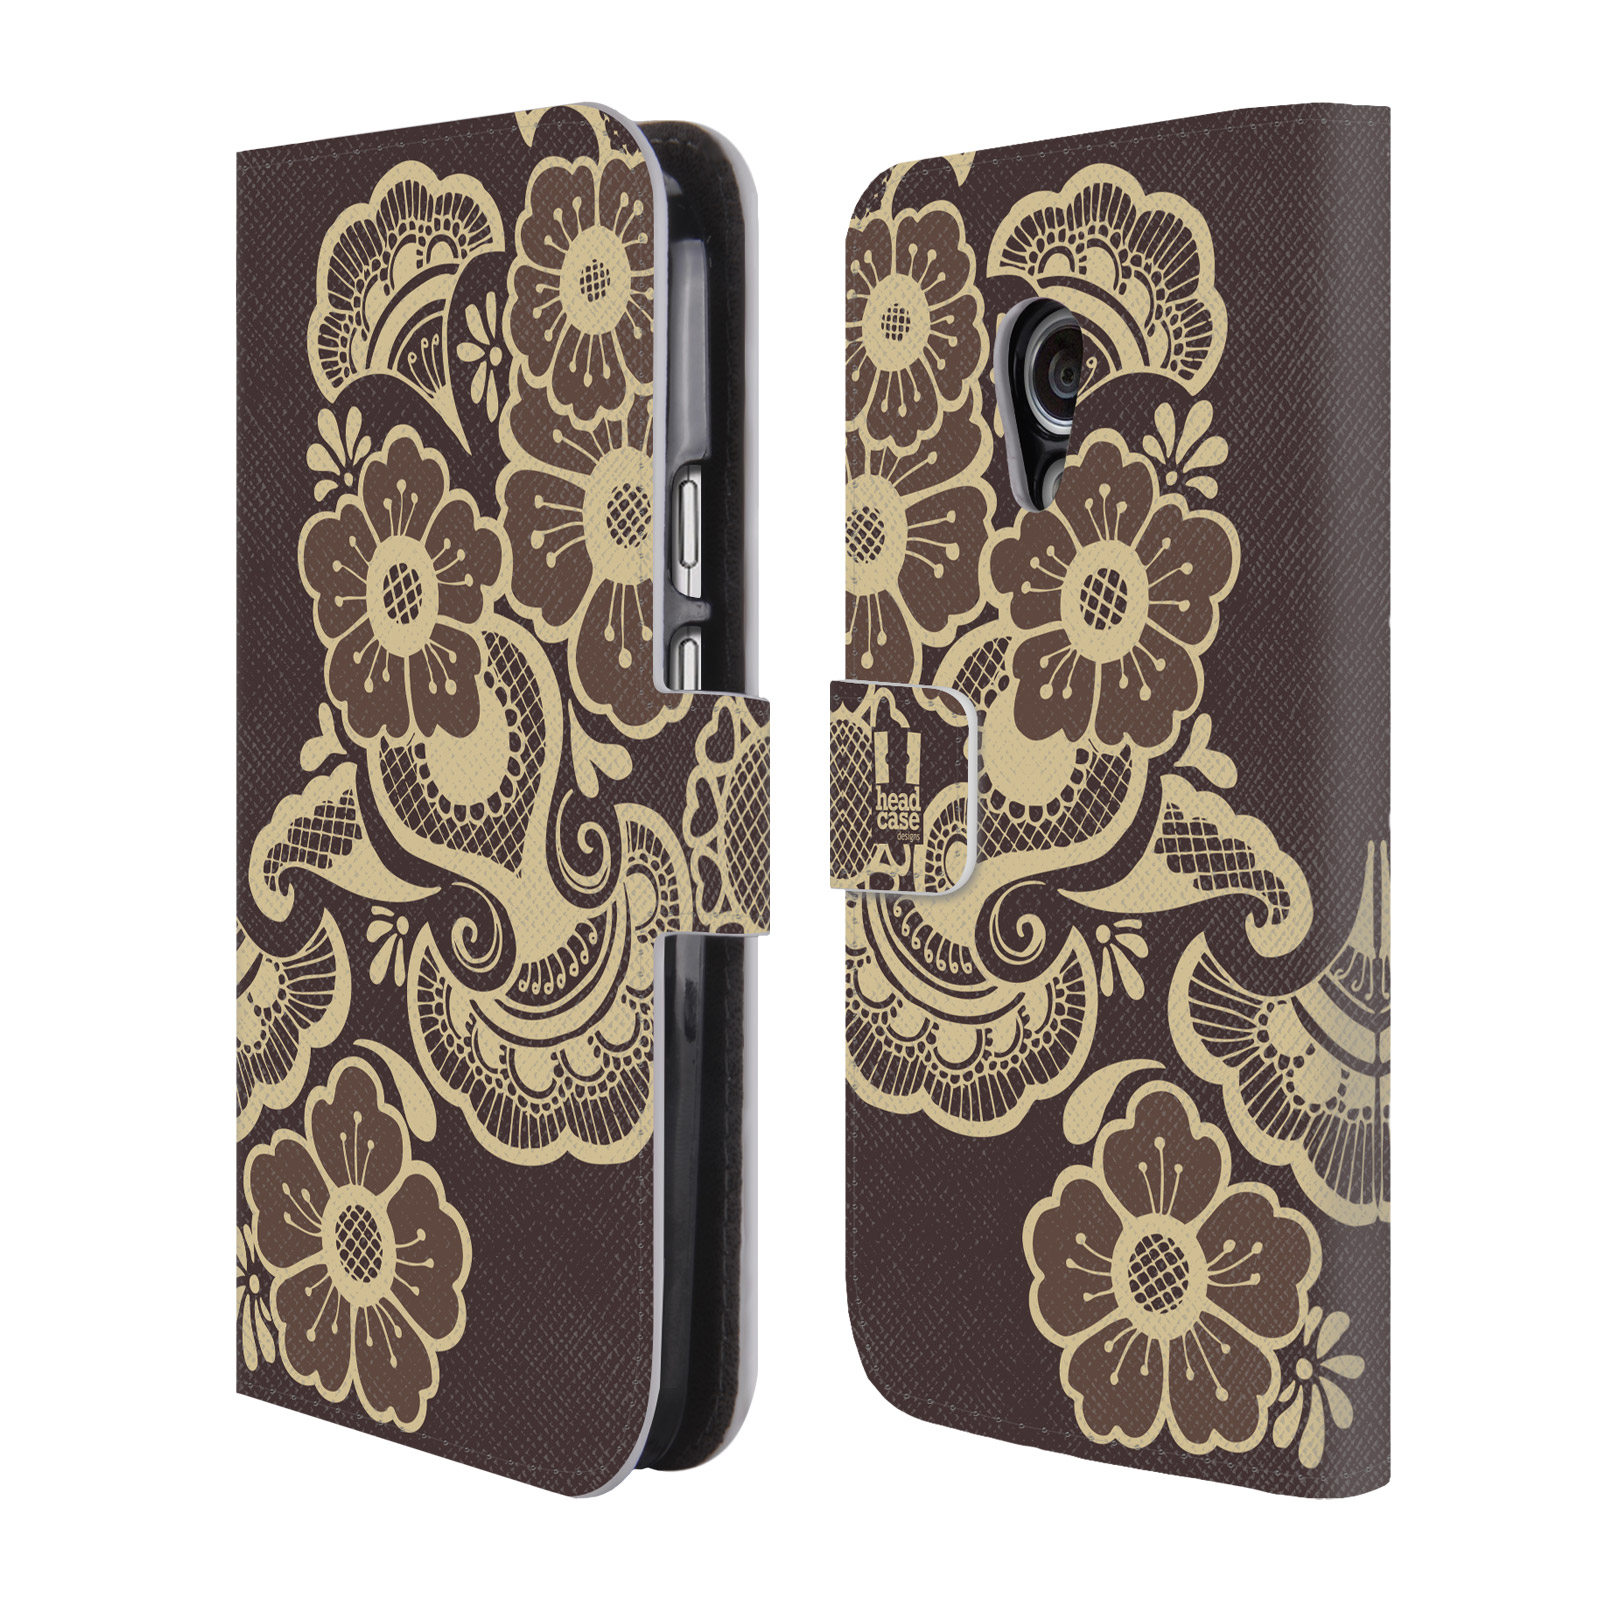 HEAD CASE DESIGNS HENNA LEATHER BOOK WALLET CASE COVER FOR